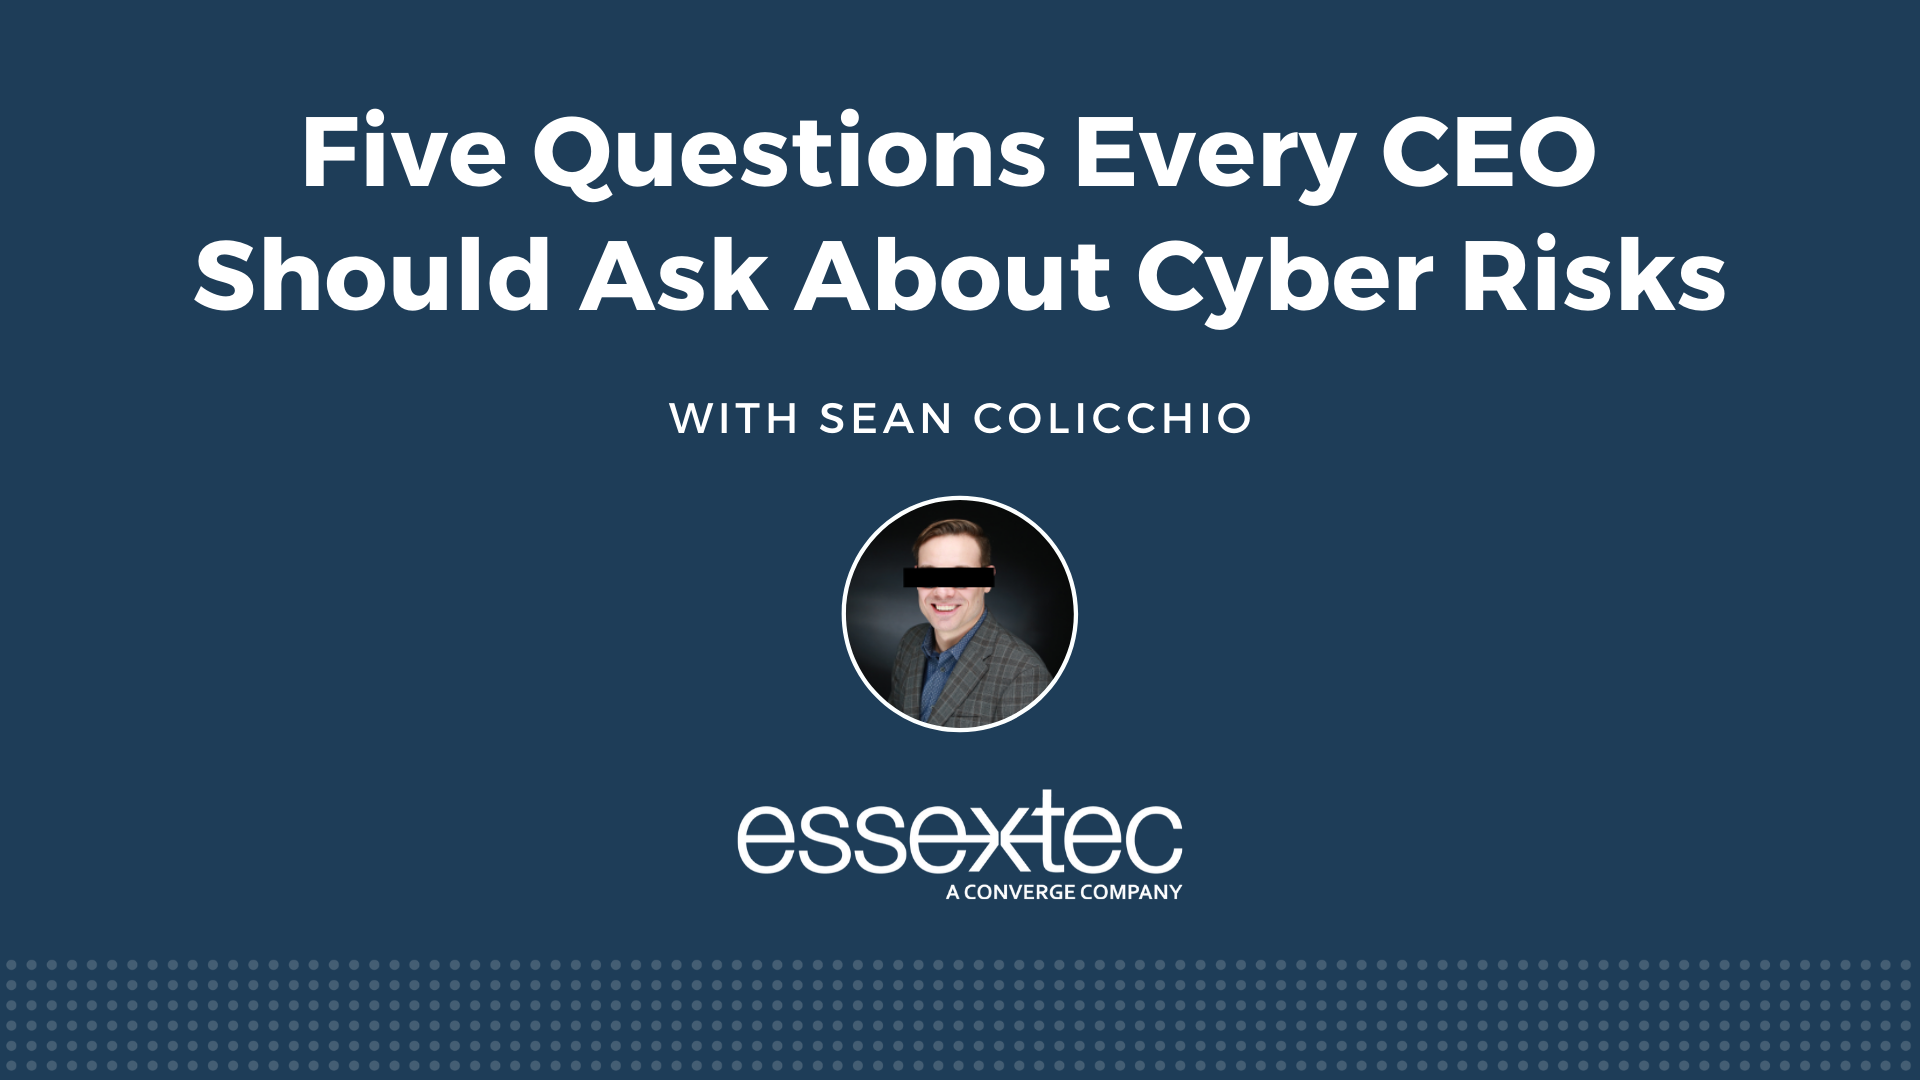 Five Questions Every CEO Should Ask About Cyber Risks